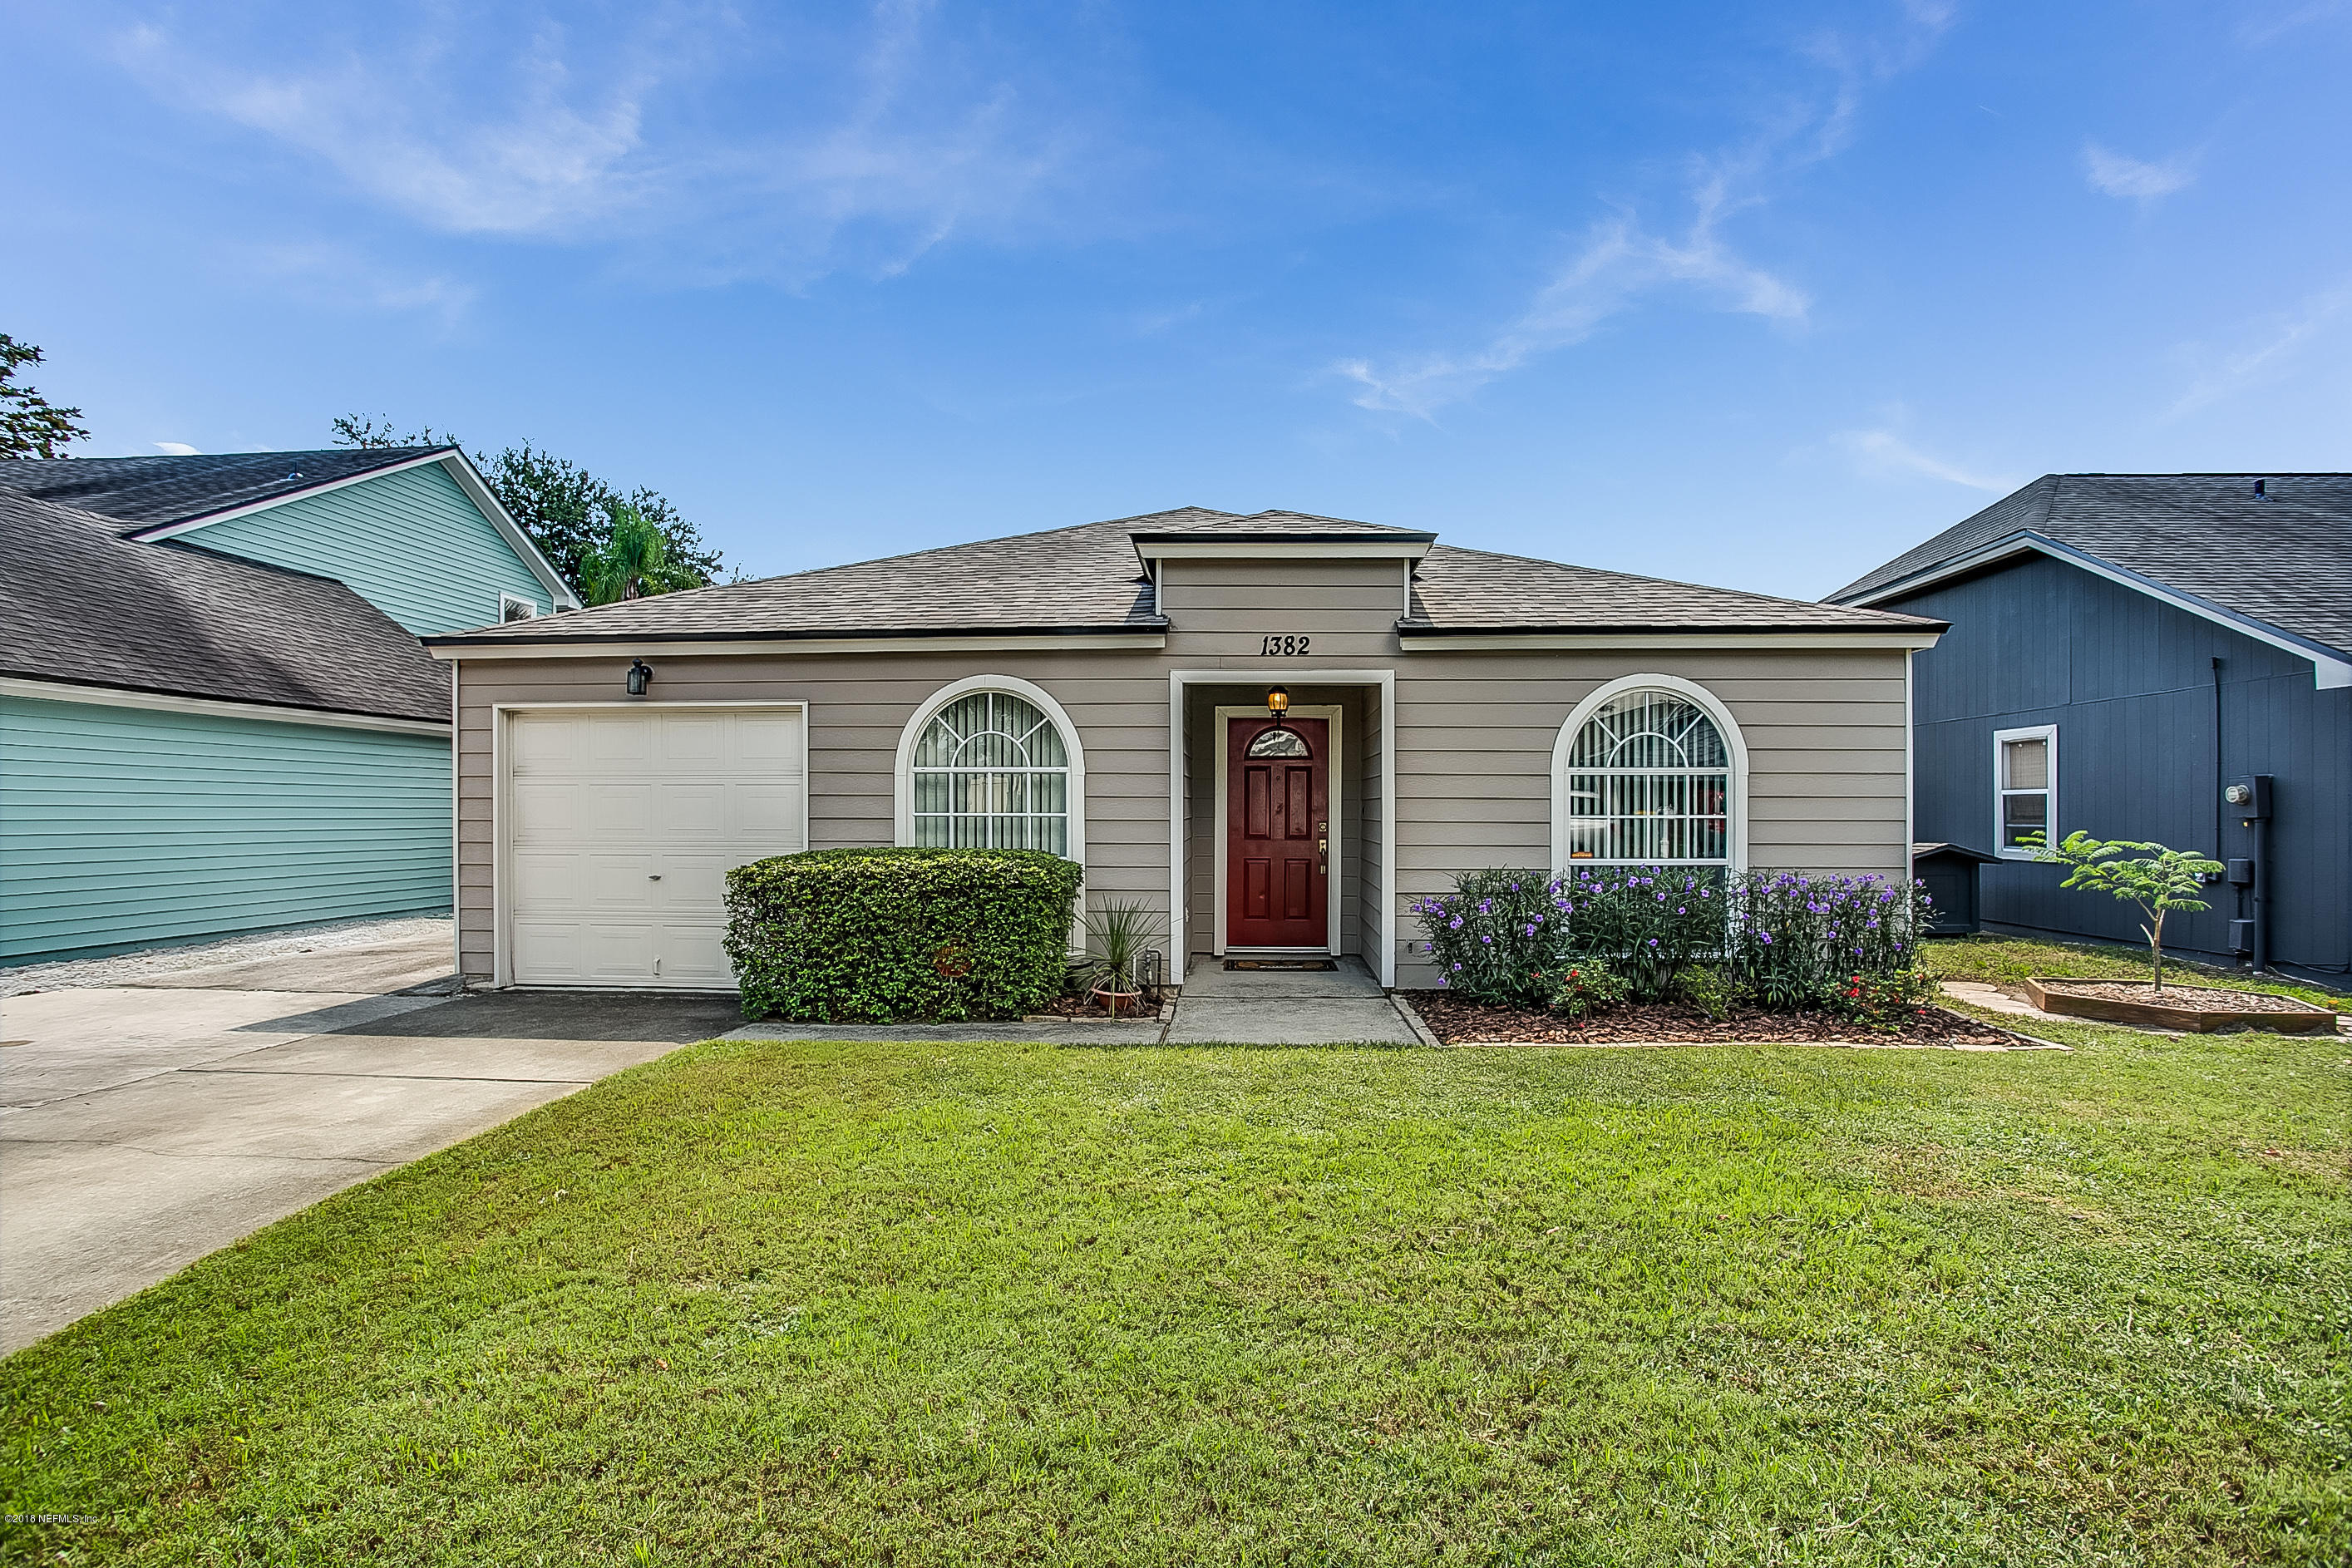 1382 EASTWIND, JACKSONVILLE BEACH, FLORIDA 32250, 3 Bedrooms Bedrooms, ,2 BathroomsBathrooms,Residential - single family,For sale,EASTWIND,958321